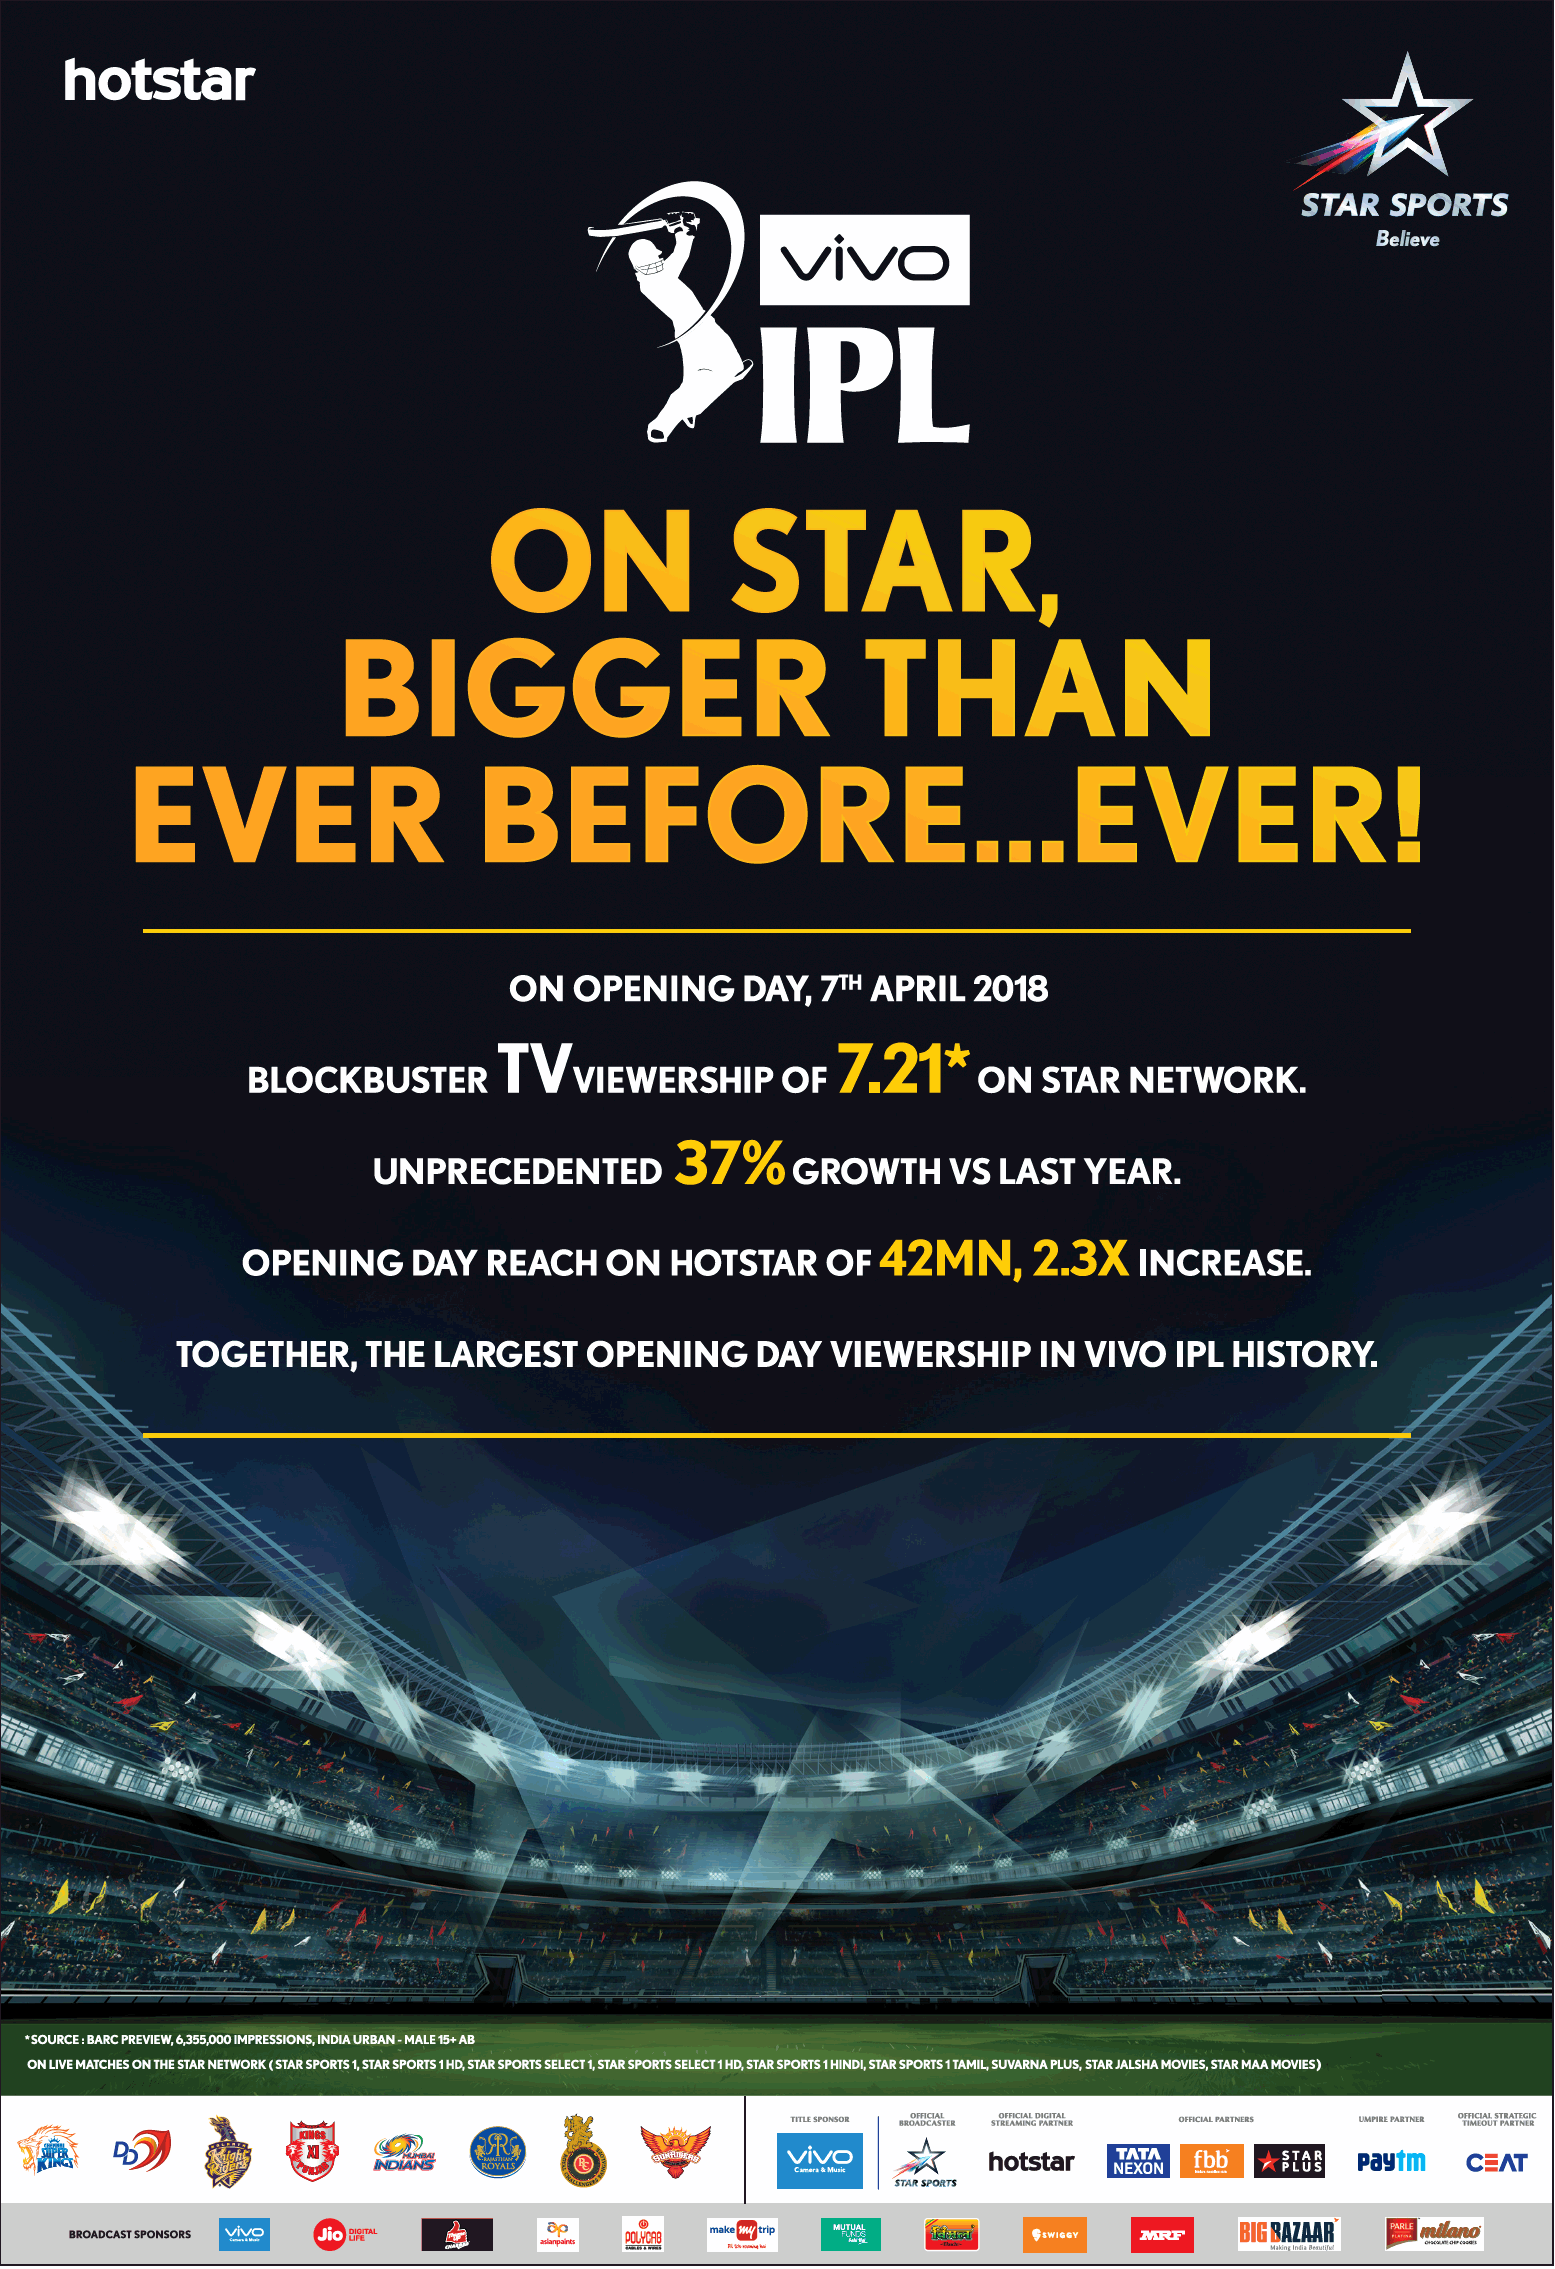 Hot Star Vivo Ipl Star Sports On Star Bigger Than Ever Before Ever Ad